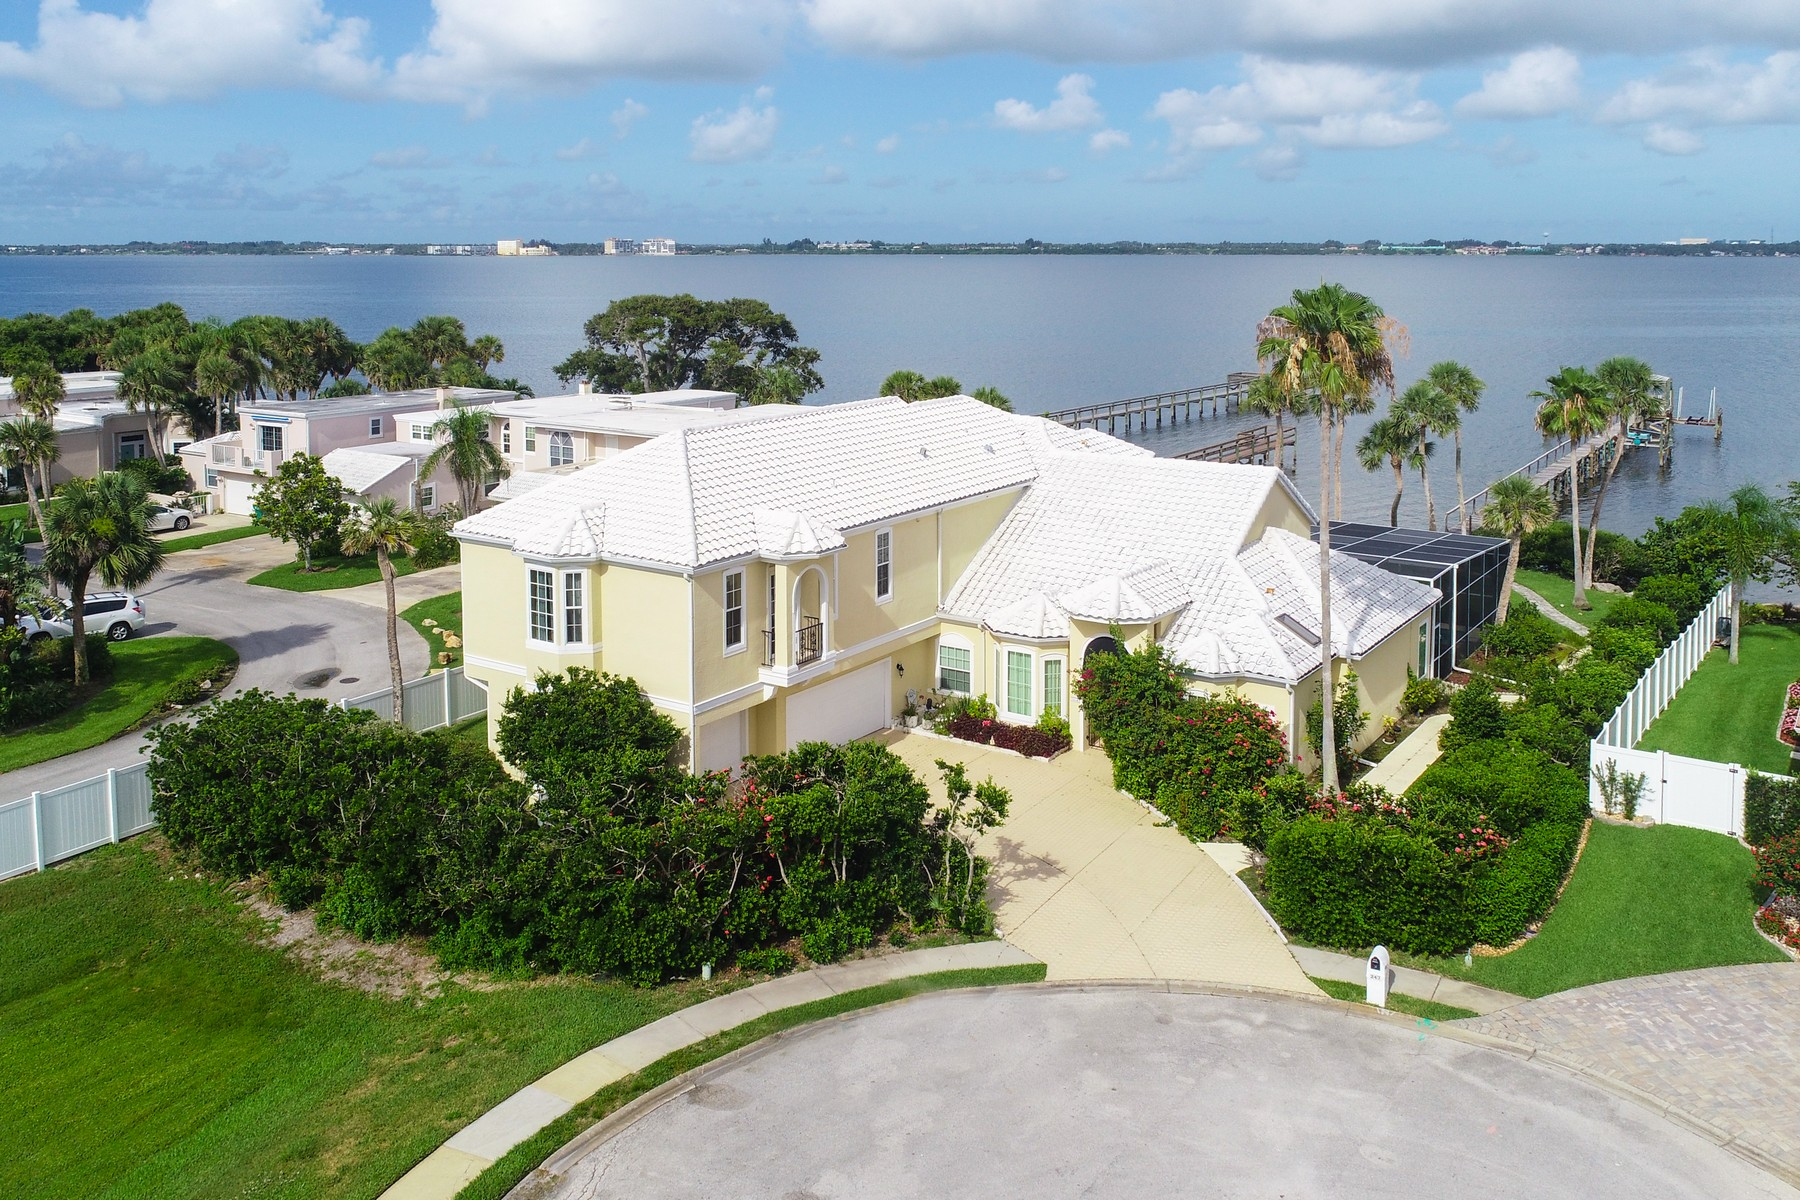 Single Family Homes for Sale at Amazing Riverfront Home in Seabreeze 247 Seaview Street Melbourne, Florida 32951 United States